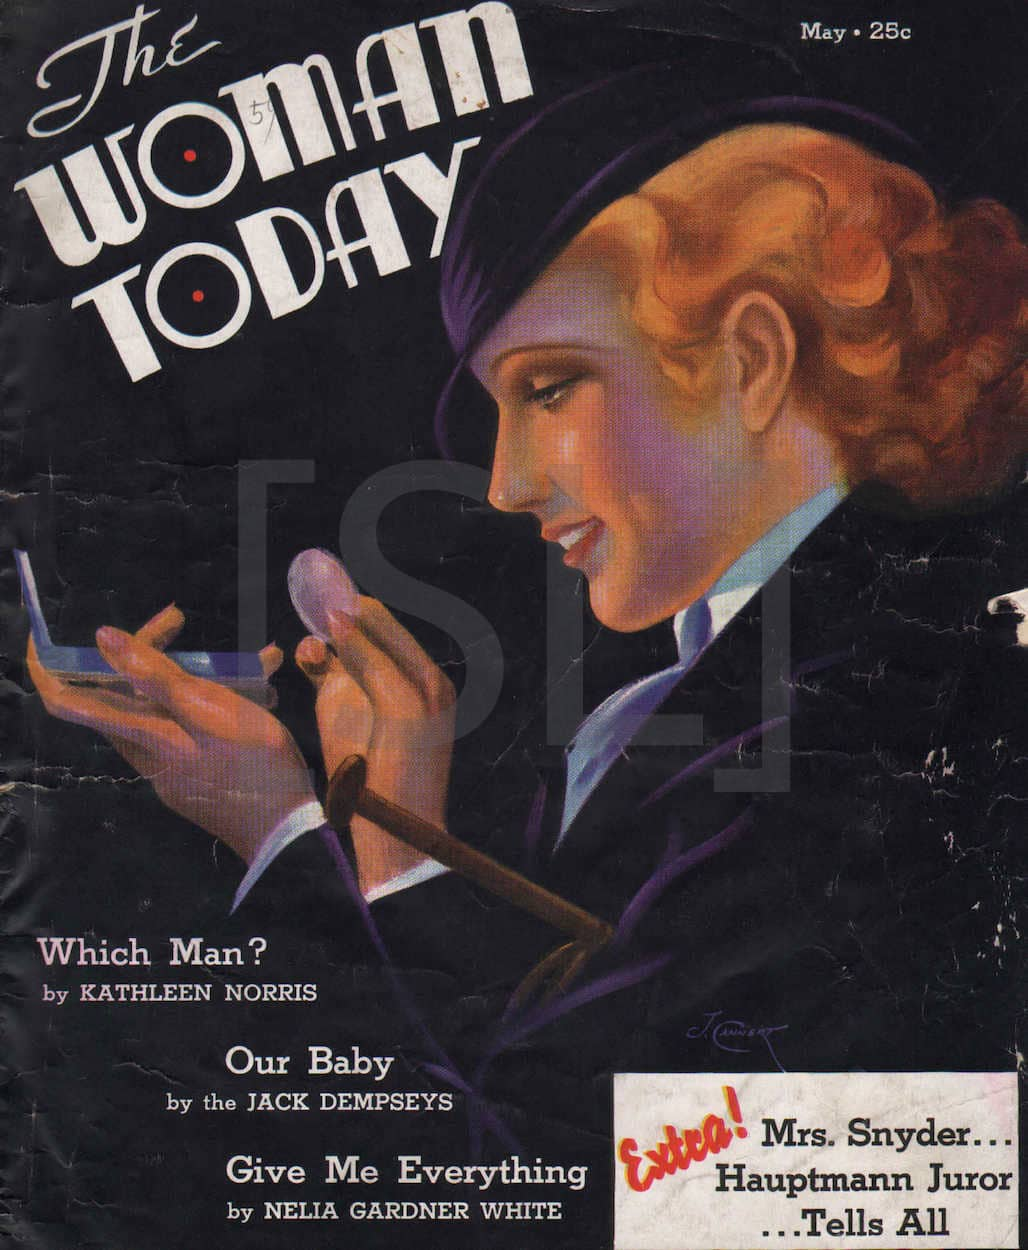 Woman Today